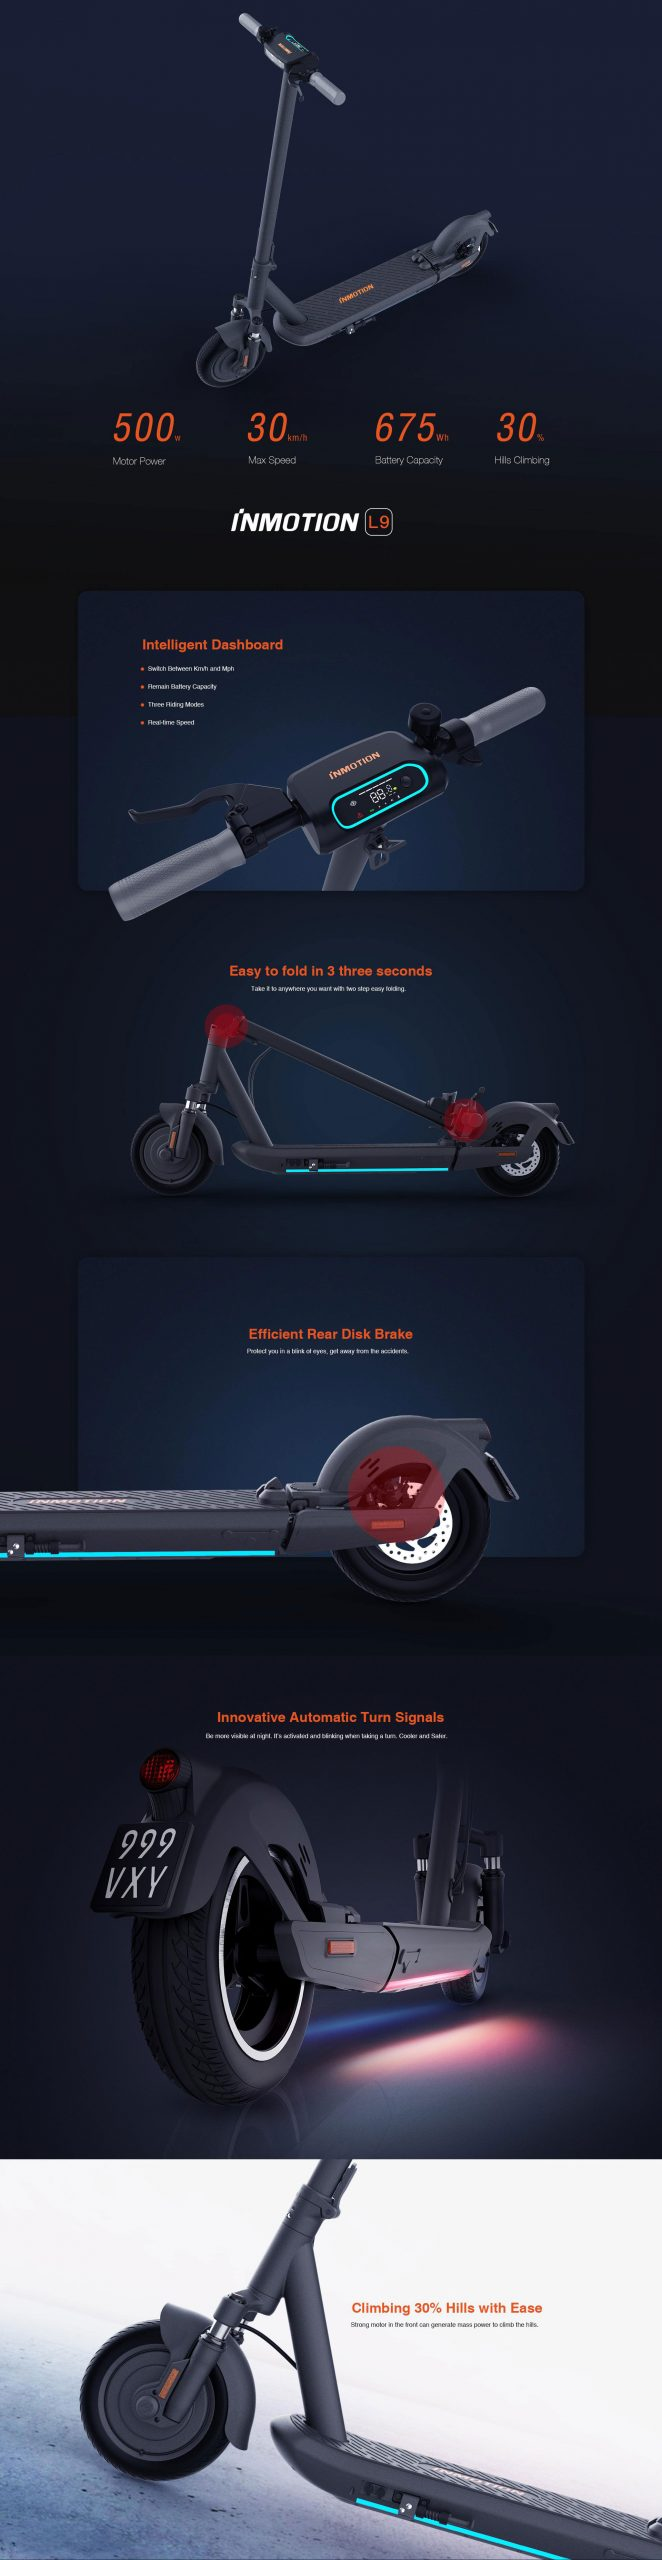 InMotion L9 Electric Scooter Full Specifications